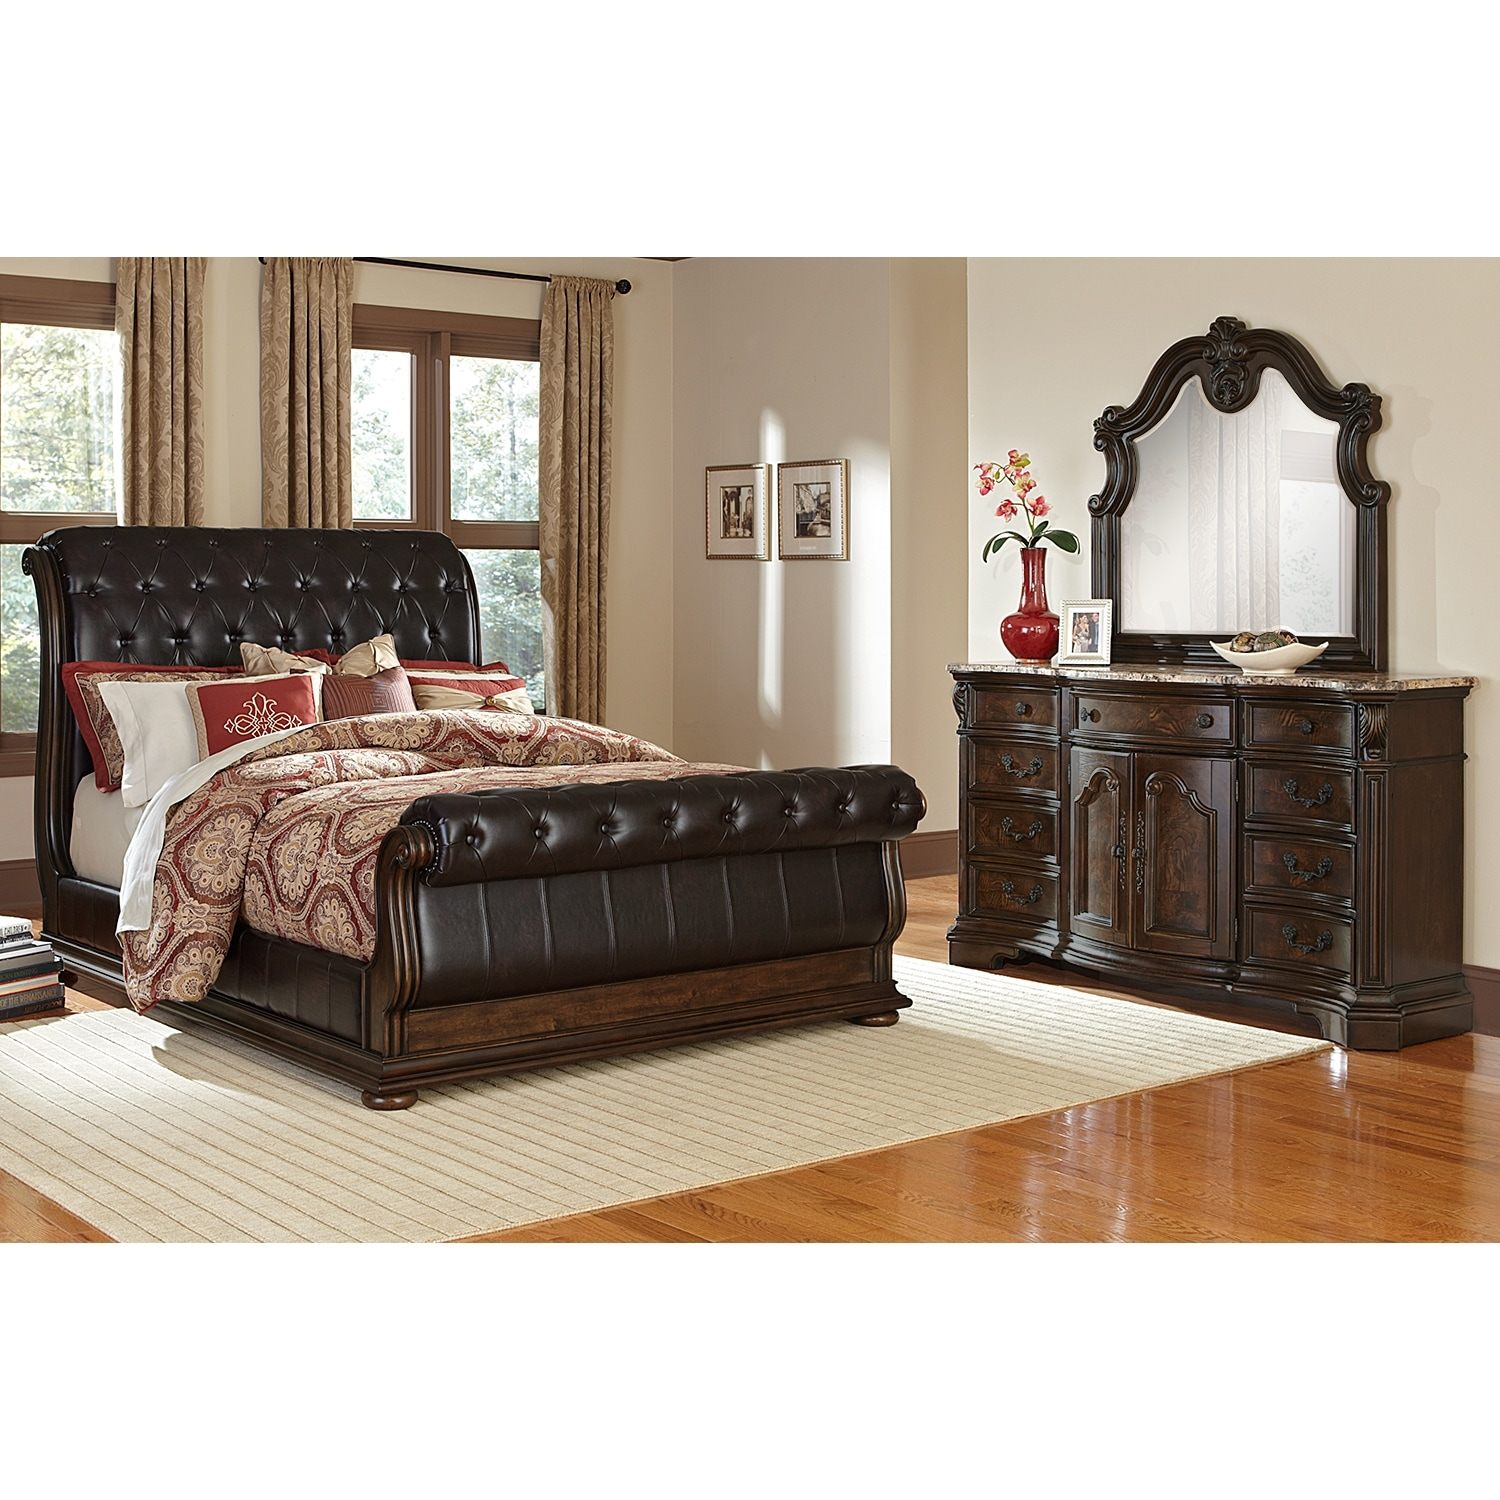 Monticello pecan ii 5 pc king bedroom value city furniture for King bedroom sets